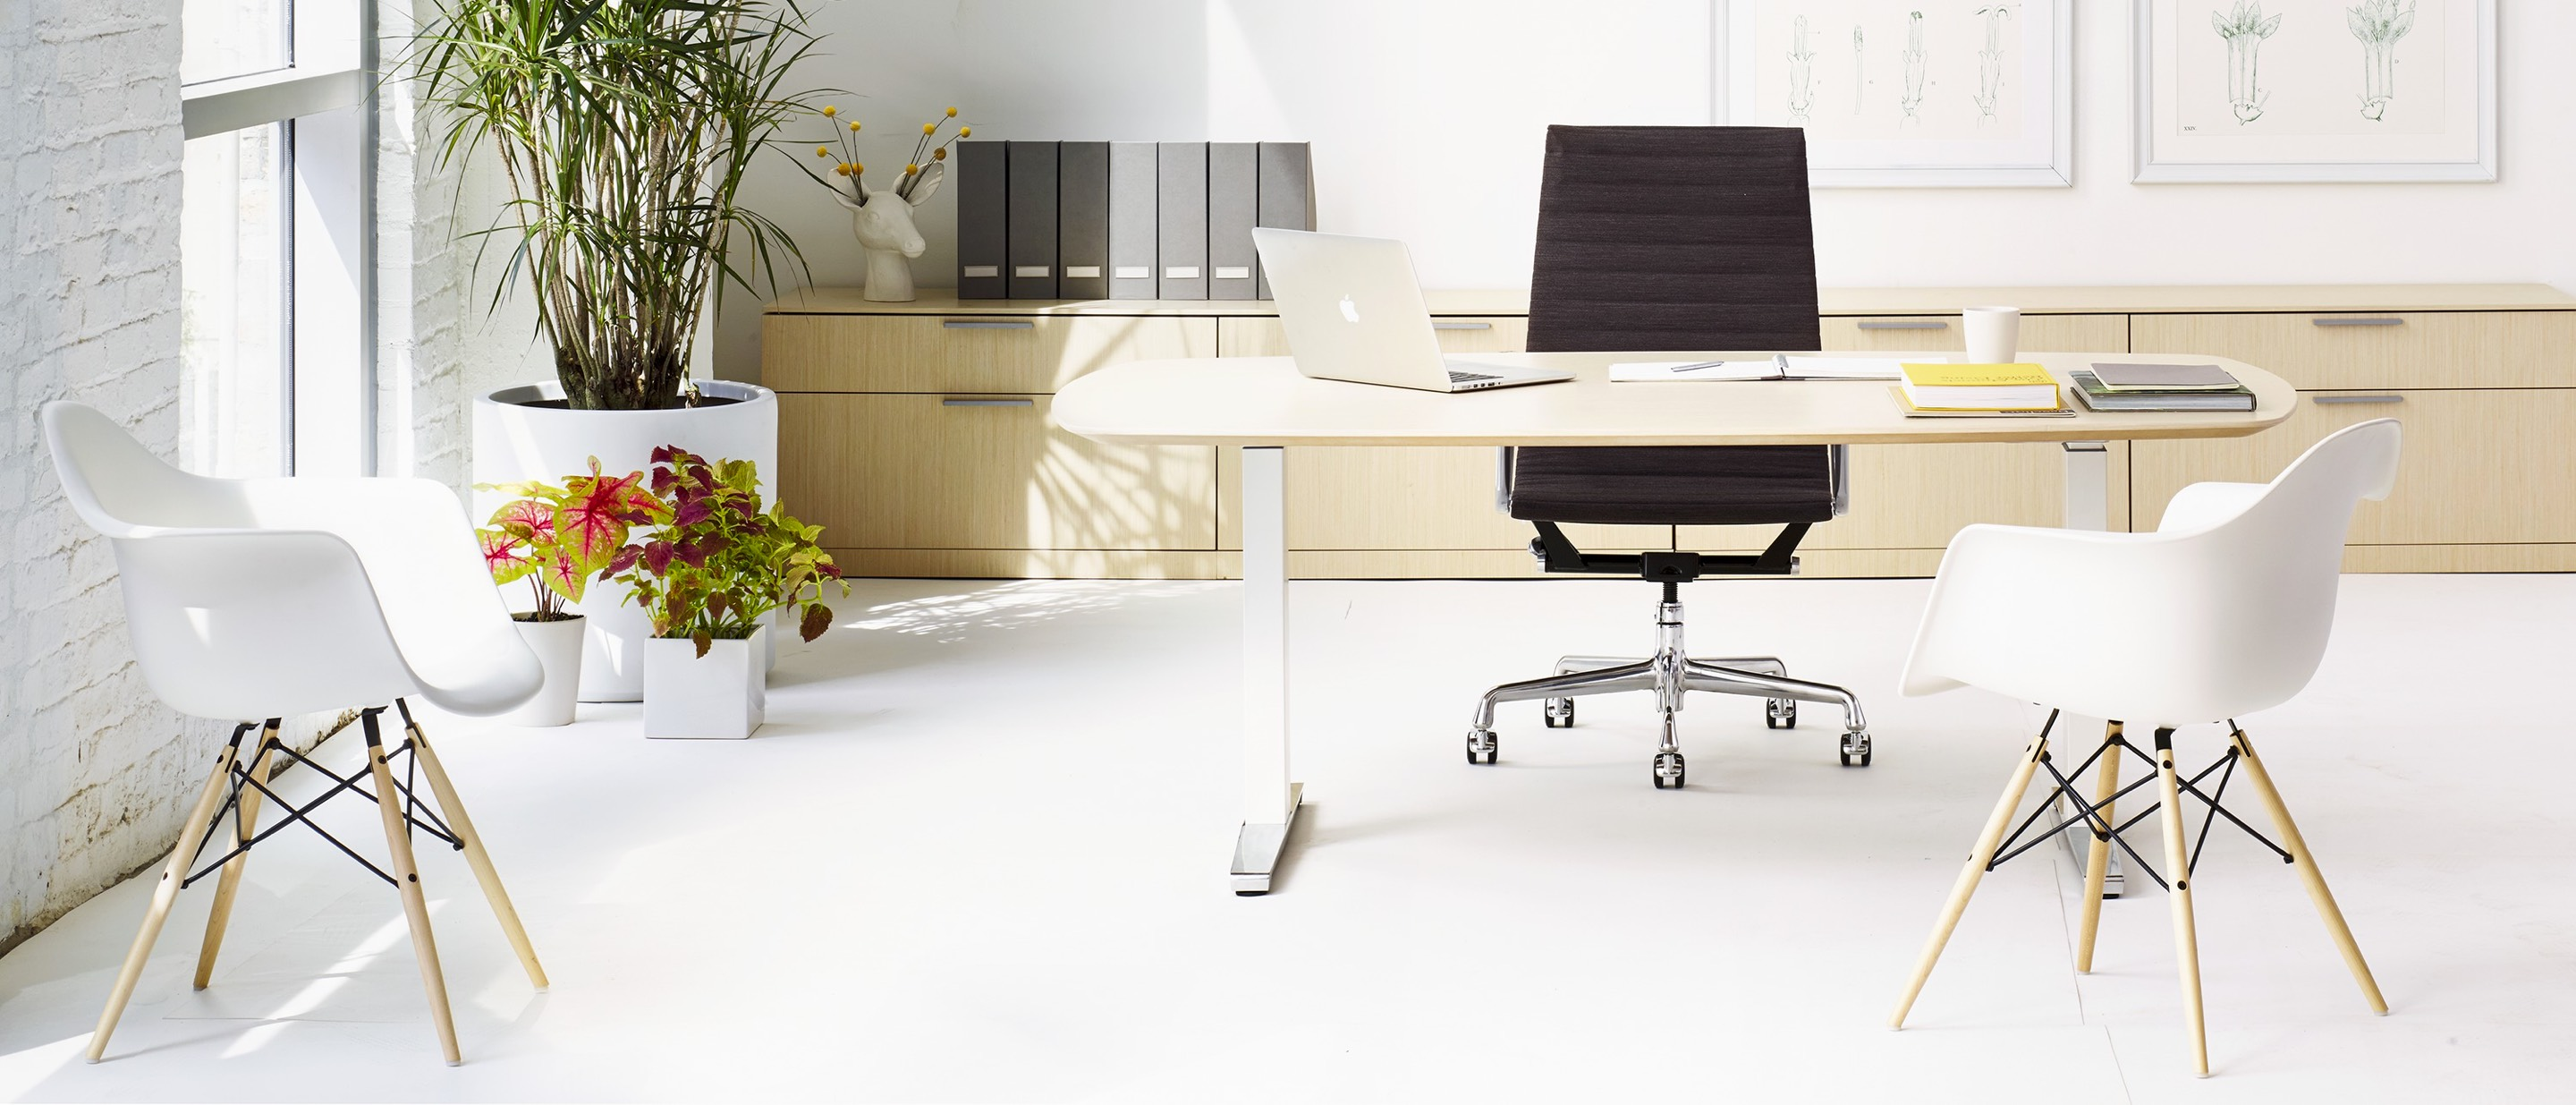 An office featuring an oval Renew Sit-to-Stand Table at a seated height, black Eames Aluminum Group Chair, and two Eames Molded Plastic Armchairs.